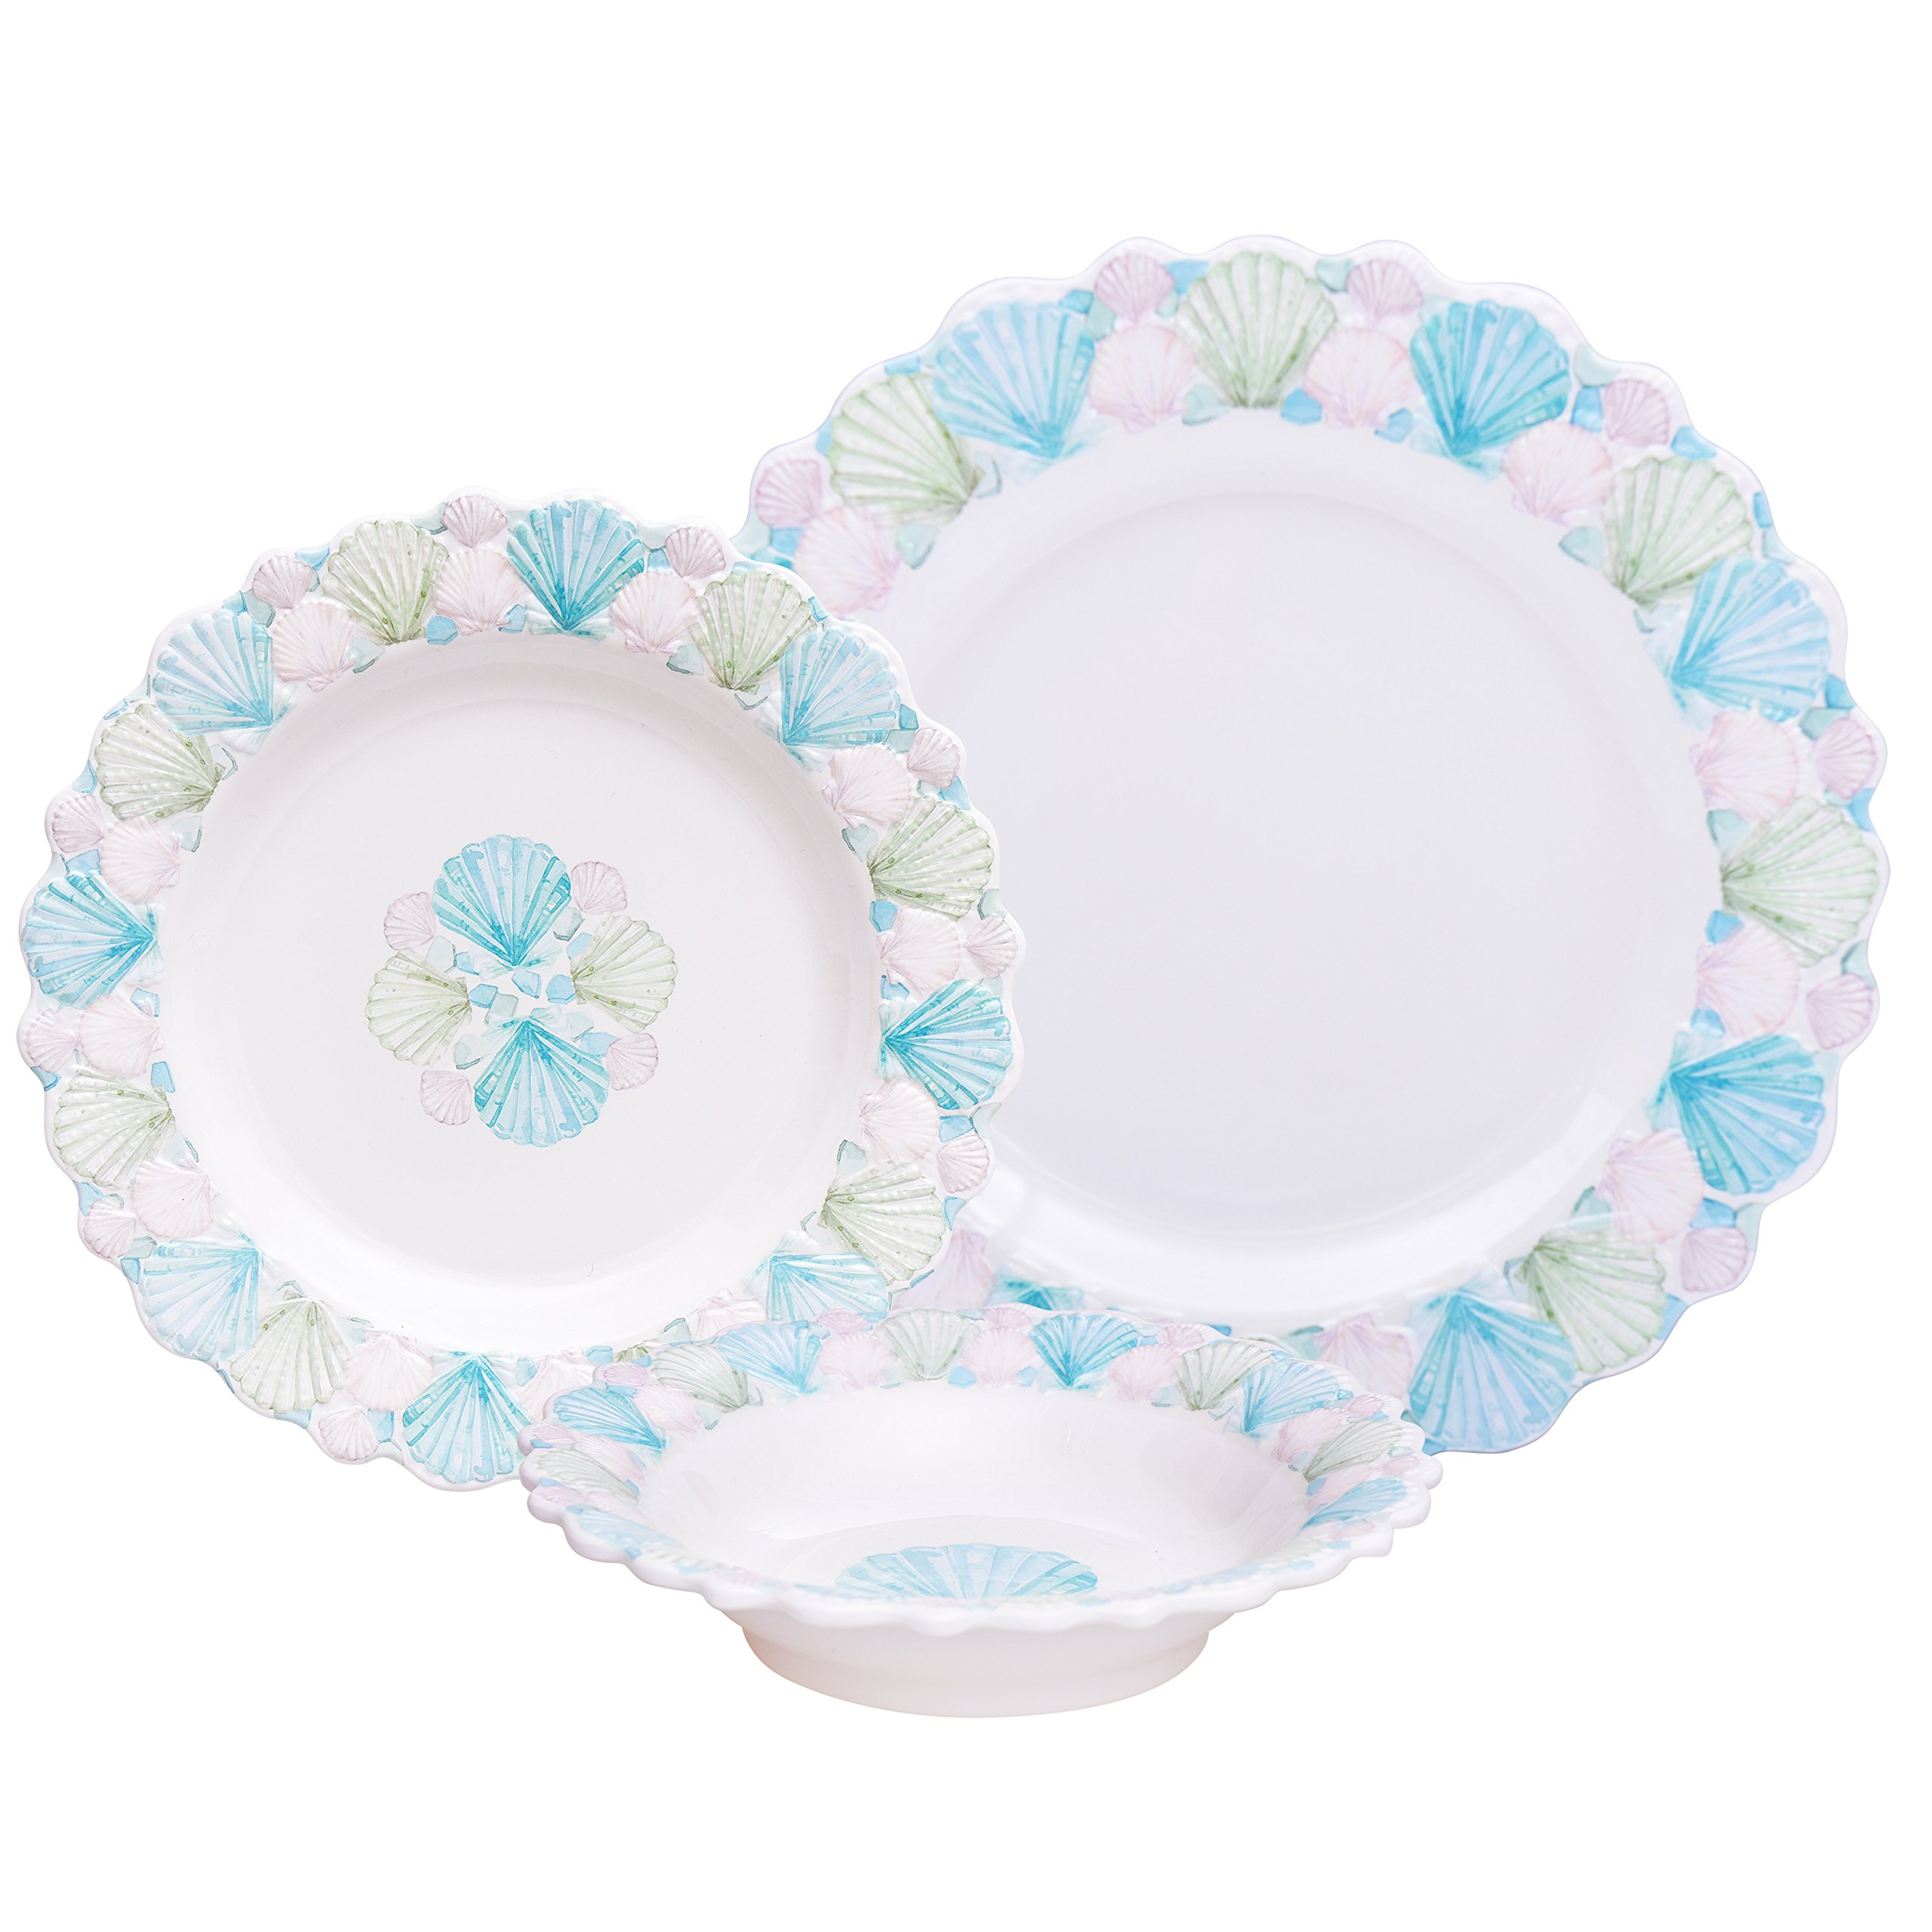 Decorative Nautical 12 Piece Melamine Dinnerware Set, Unique Dishes for Everyday Use, Service for 4